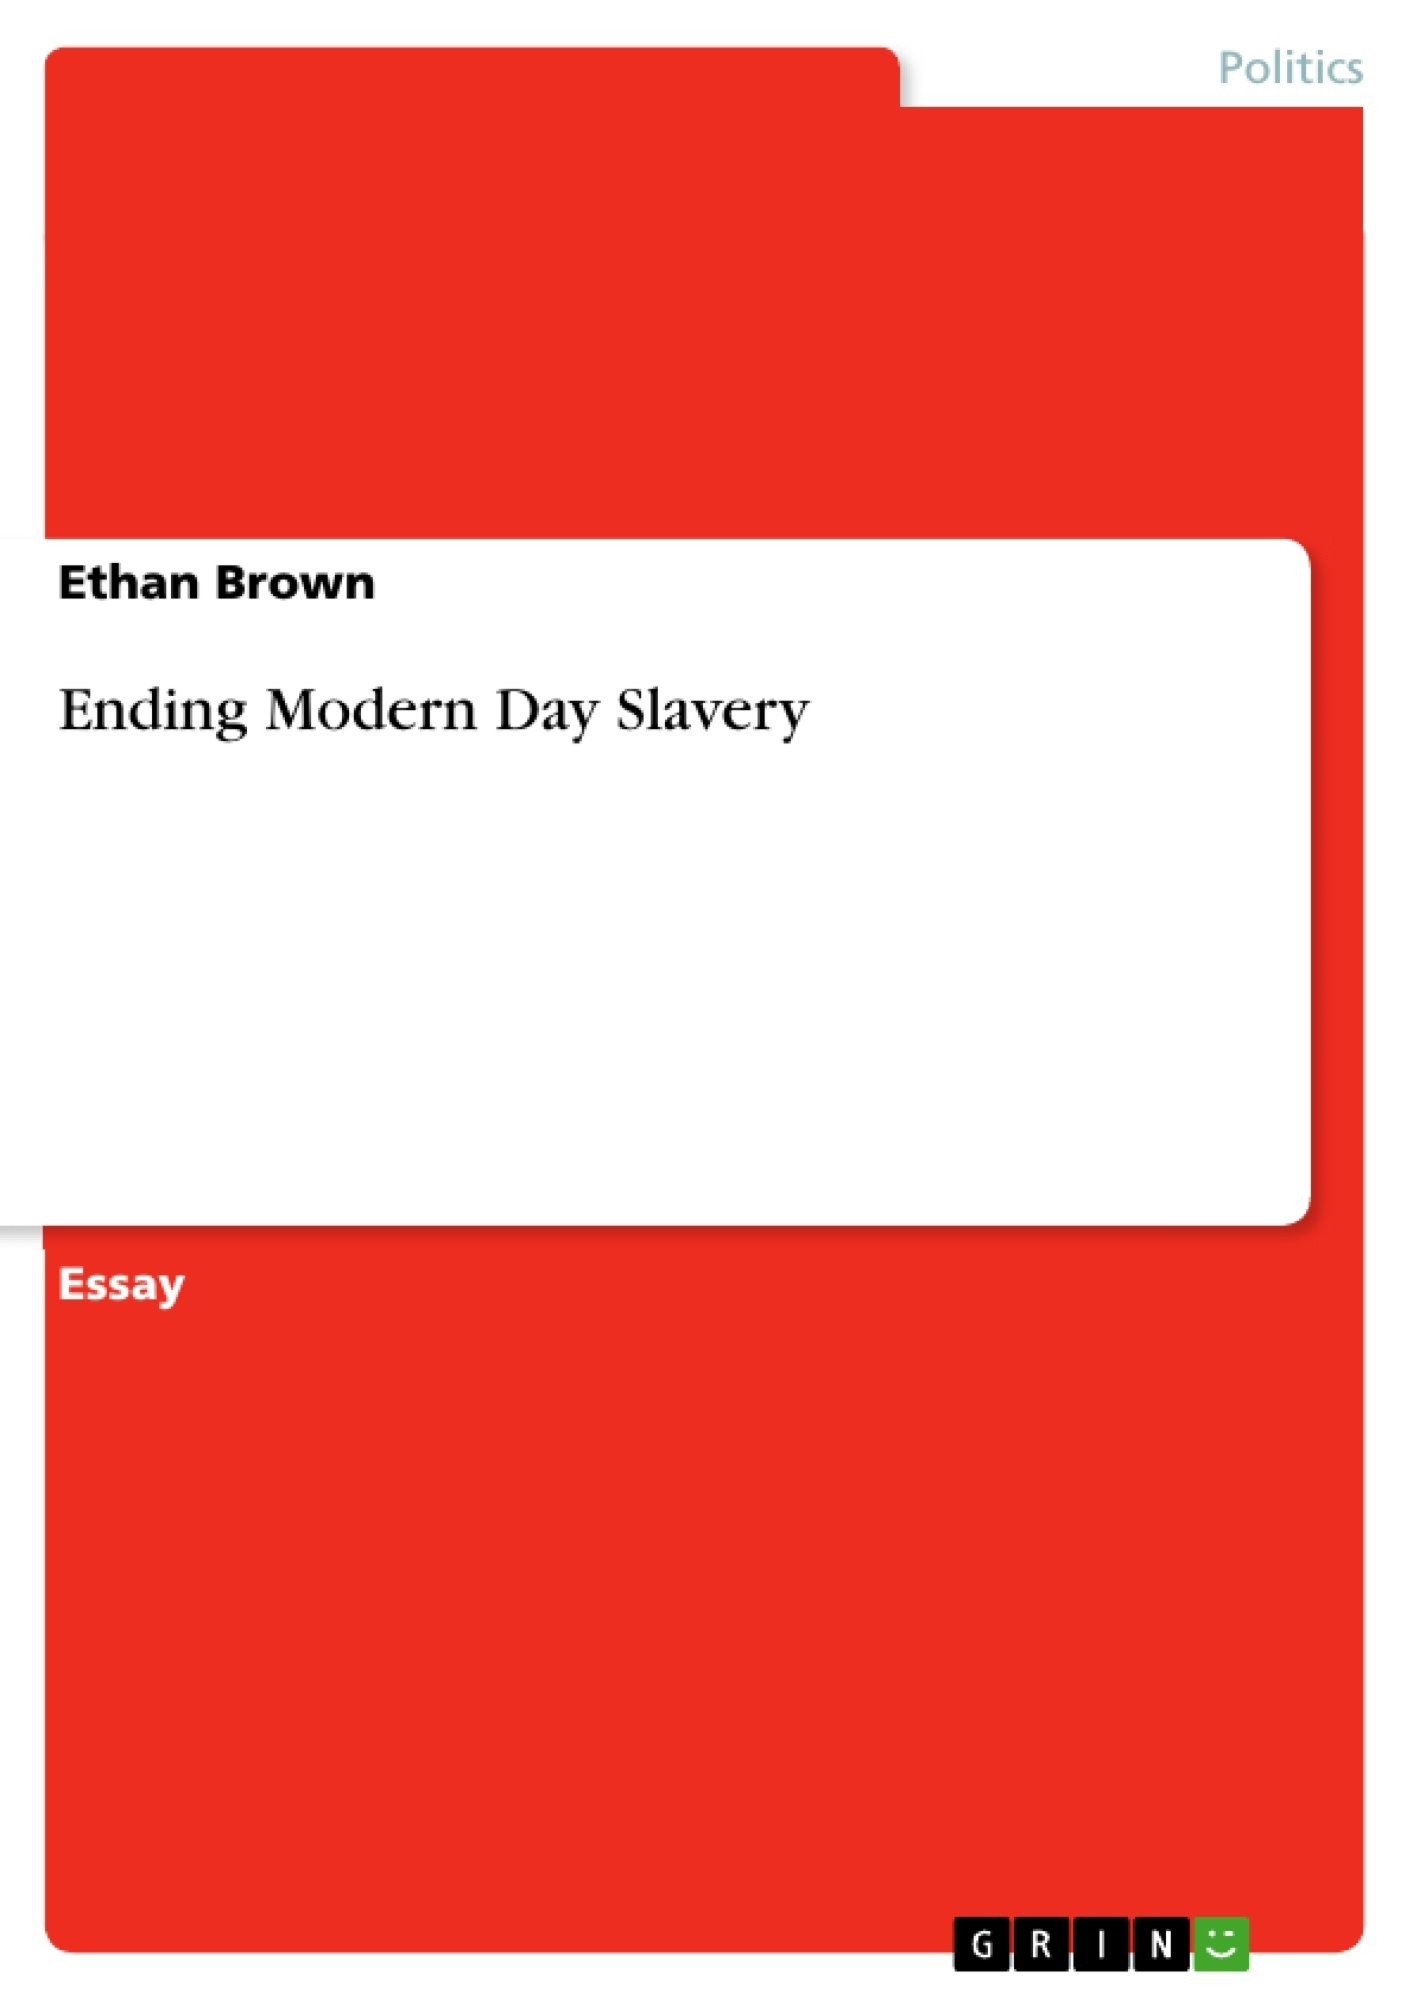 modern day slavery essay At any given time in 2016, an estimated 403 million people are in modern slavery, including 249 million in forced labour and 154 million in forced marriage it means there are 54 victims of modern slavery for every 1,000 people in the world.